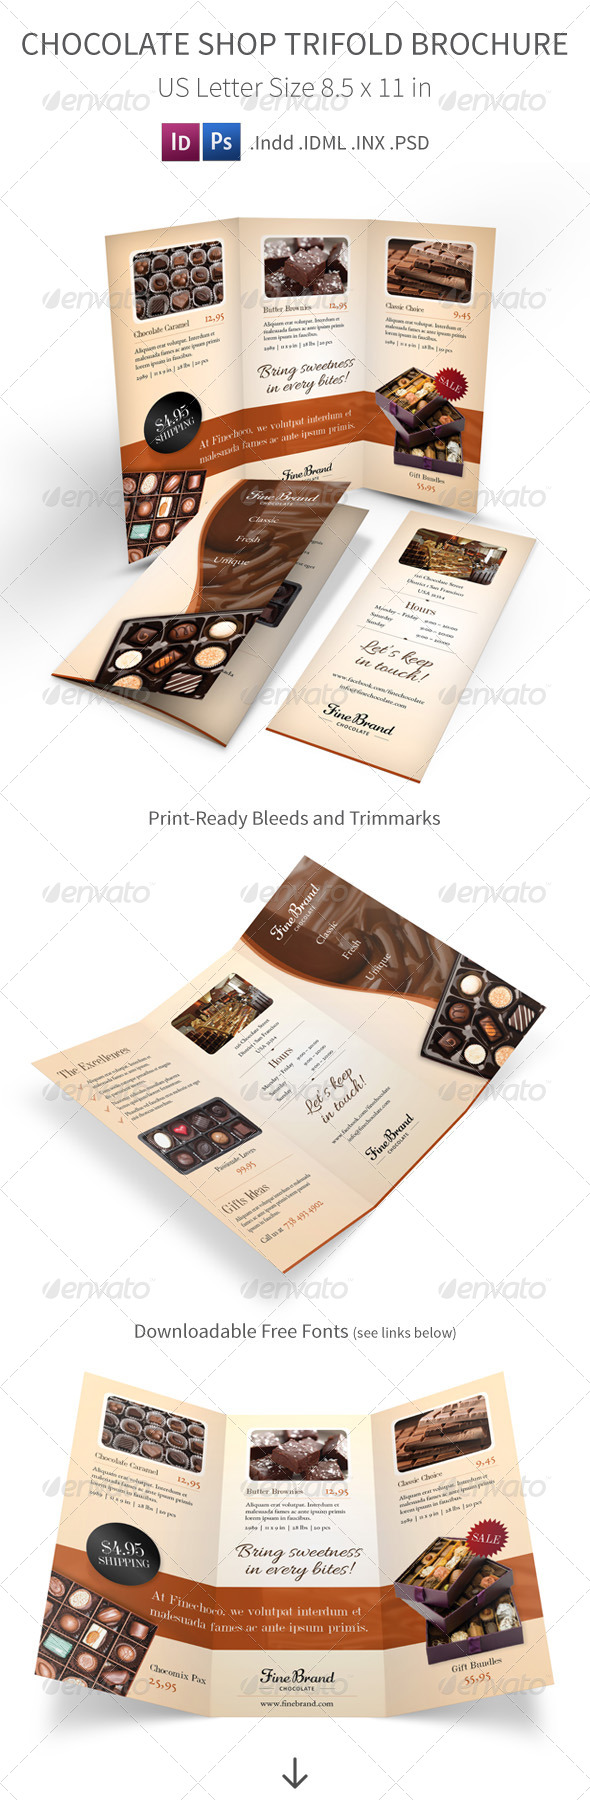 Chocolate Shop Trifold Brochure